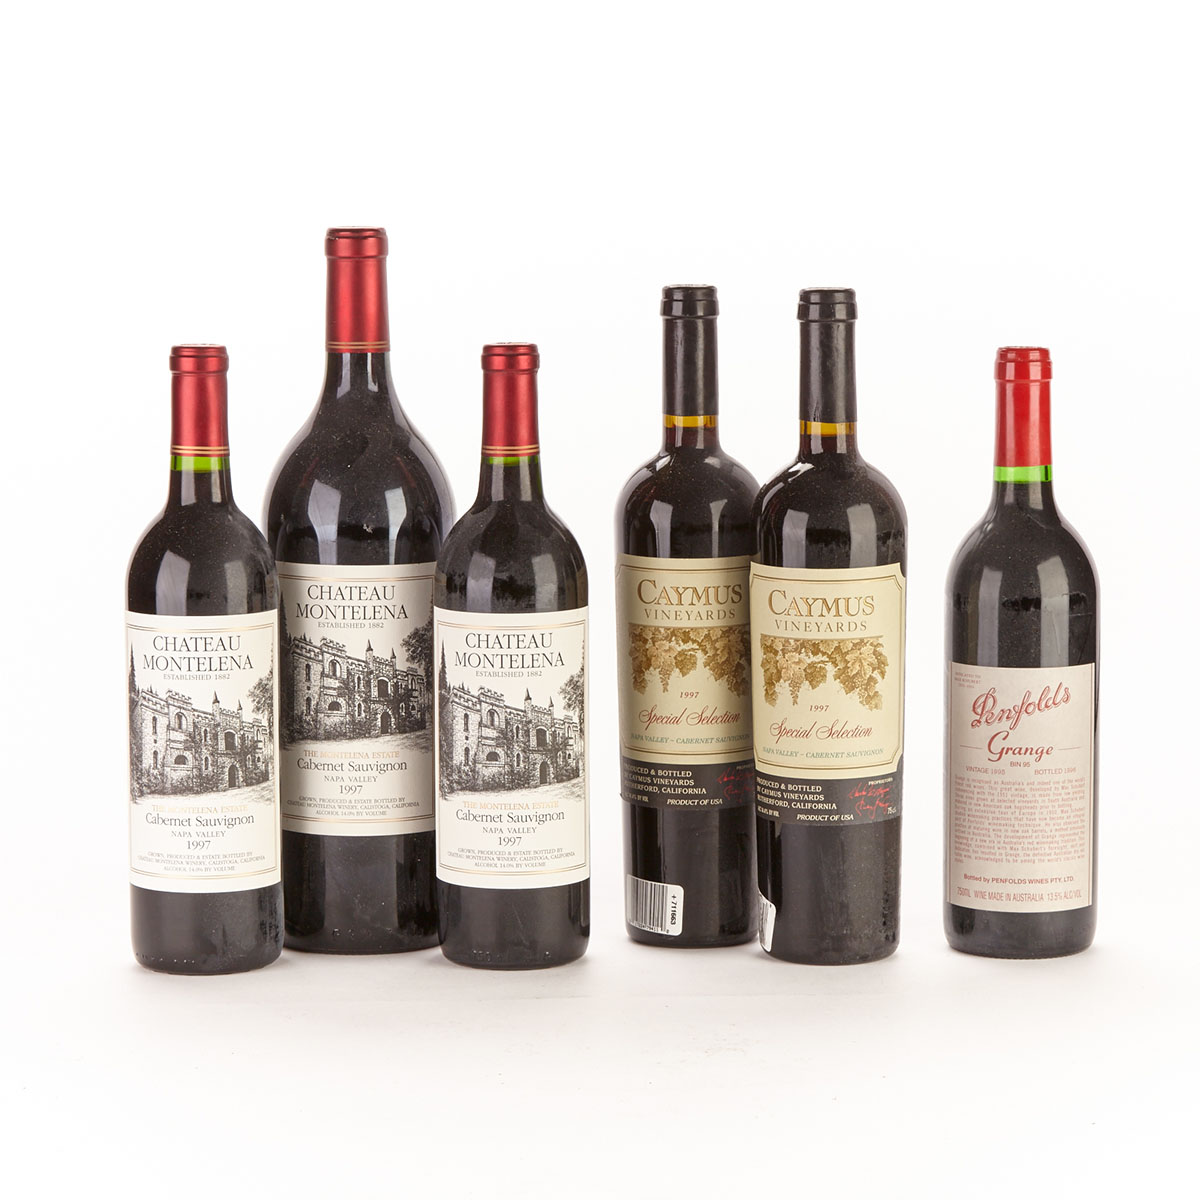 CHÂTEAU MONTELENA 1997 (1 MAG) CHÂTEAU MONTELENA 1997 (2) CAYMUS SPECIAL SELECT 1997 (2)  PENFOLDS GRANGE BIN 95 1995 (1)